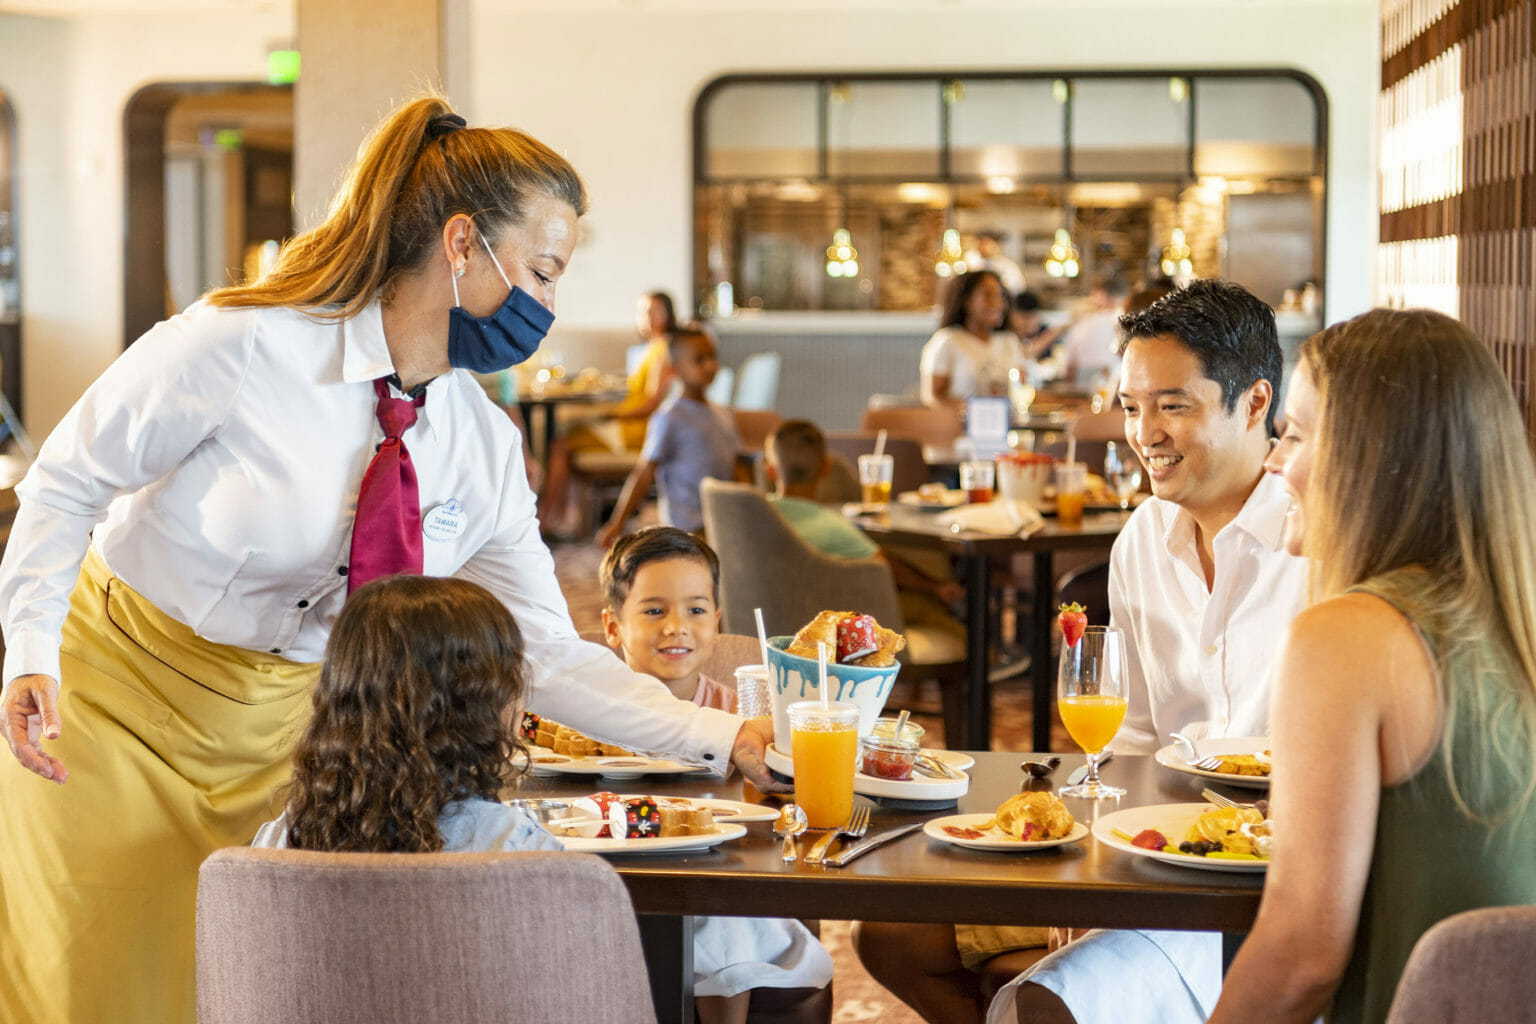 Dining With Allergy Restrictions at Walt Disney World